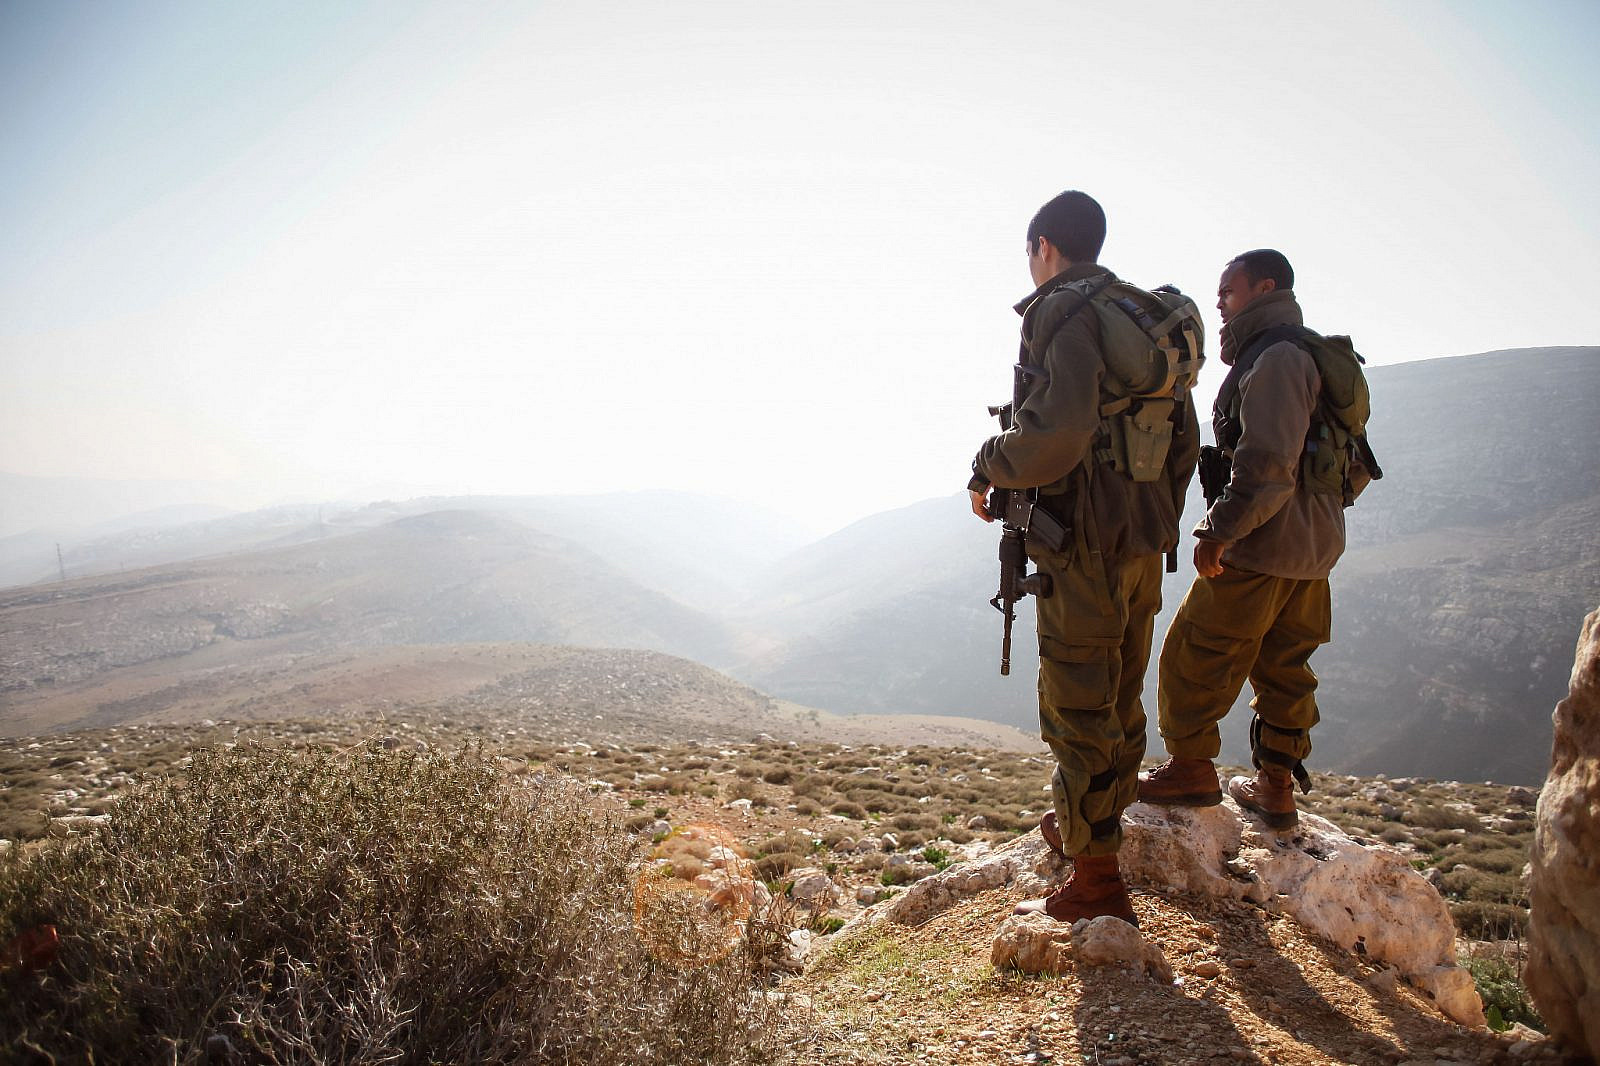 Israeli soldiers stand guard during a tour by Israeli parliament members in the Jordan Valley near the Jewish settlement of Maale Efrayim. January 2, 2014. (Uri Lenz/FLASH90)